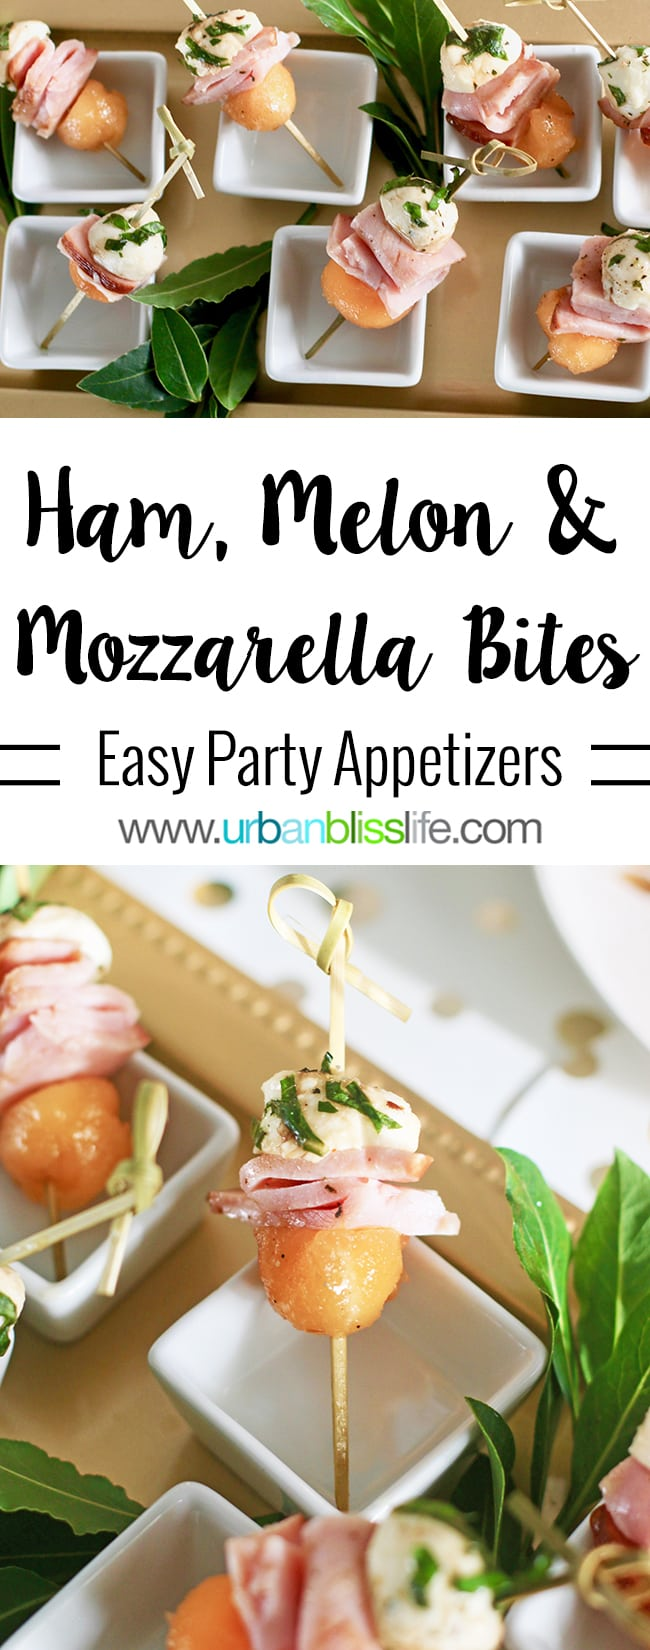 Ham, Melon, Mozarella Bites party appetizer recipe on UrbanBlissLife.com